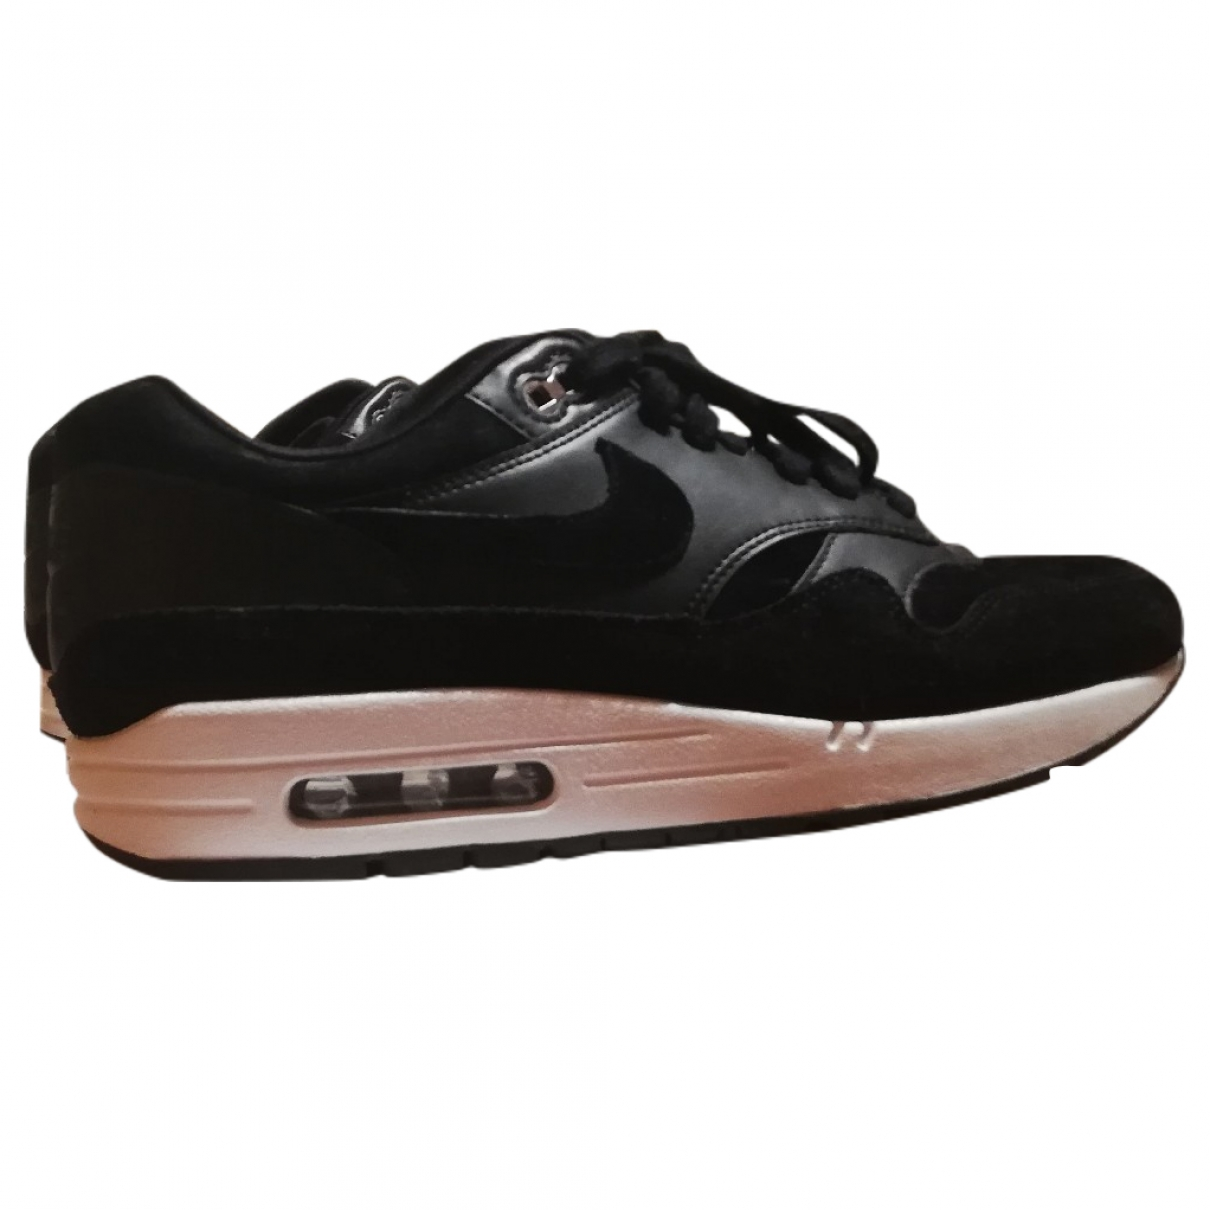 Nike Air Max 1 Black Leather Trainers for Men 42.5 EU